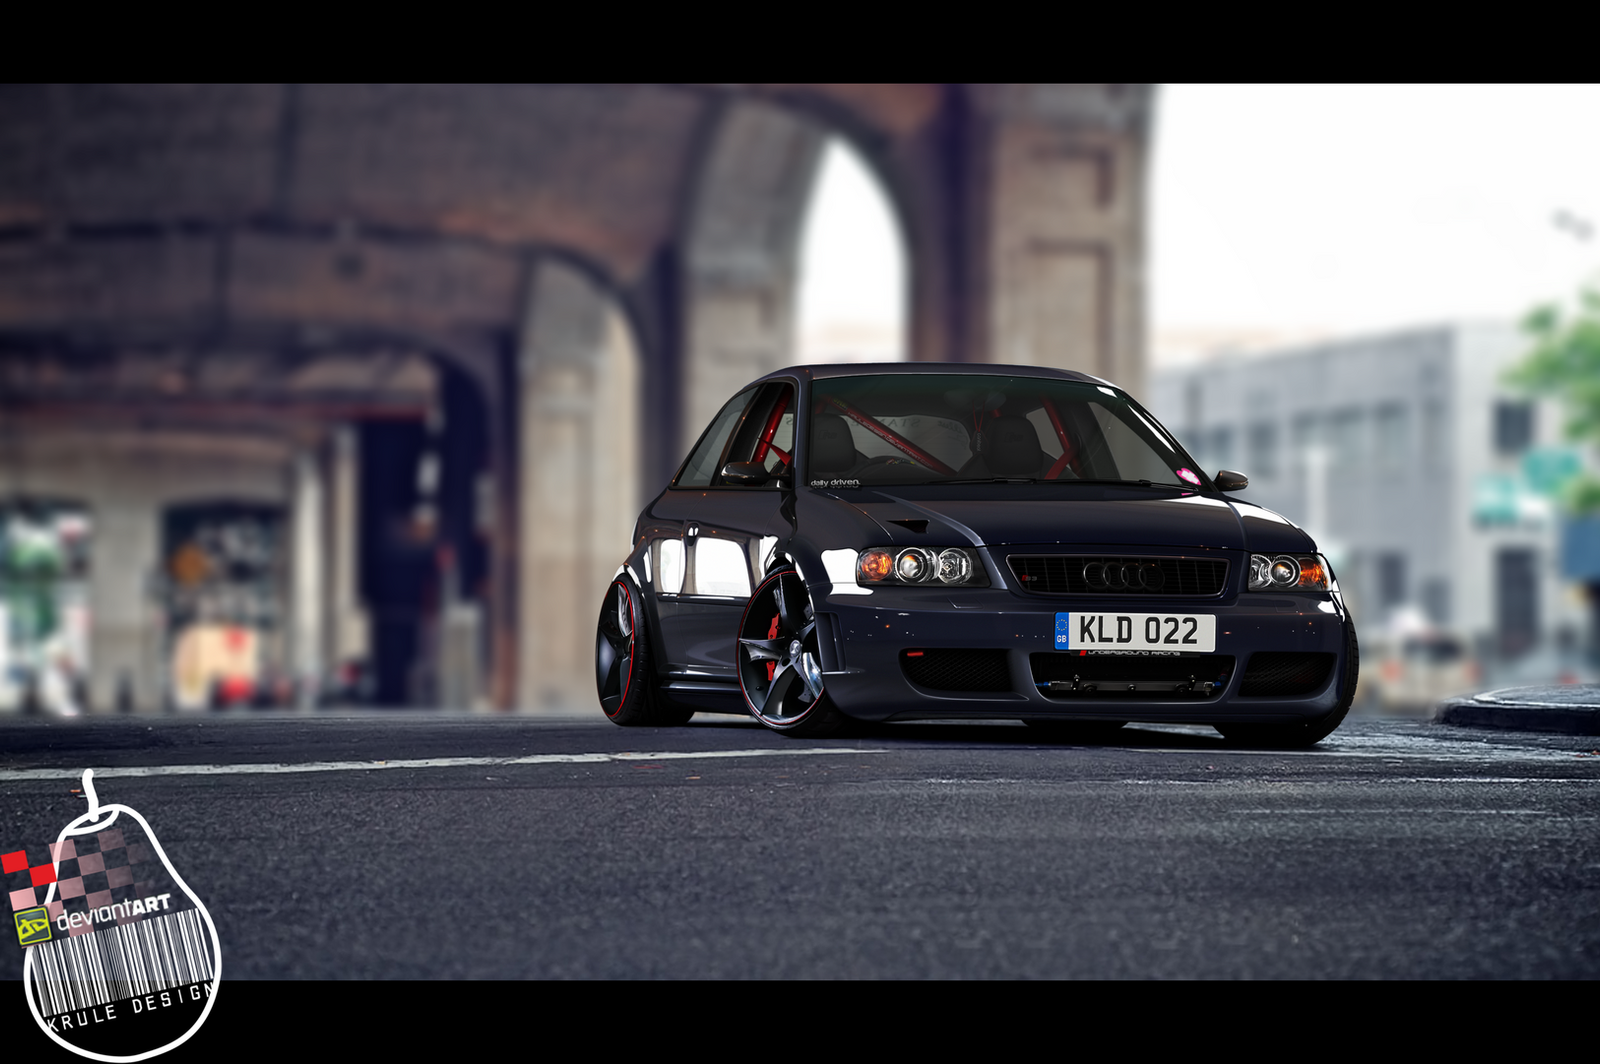 Audi S3 8l Stanced By Kruledesign On Deviantart